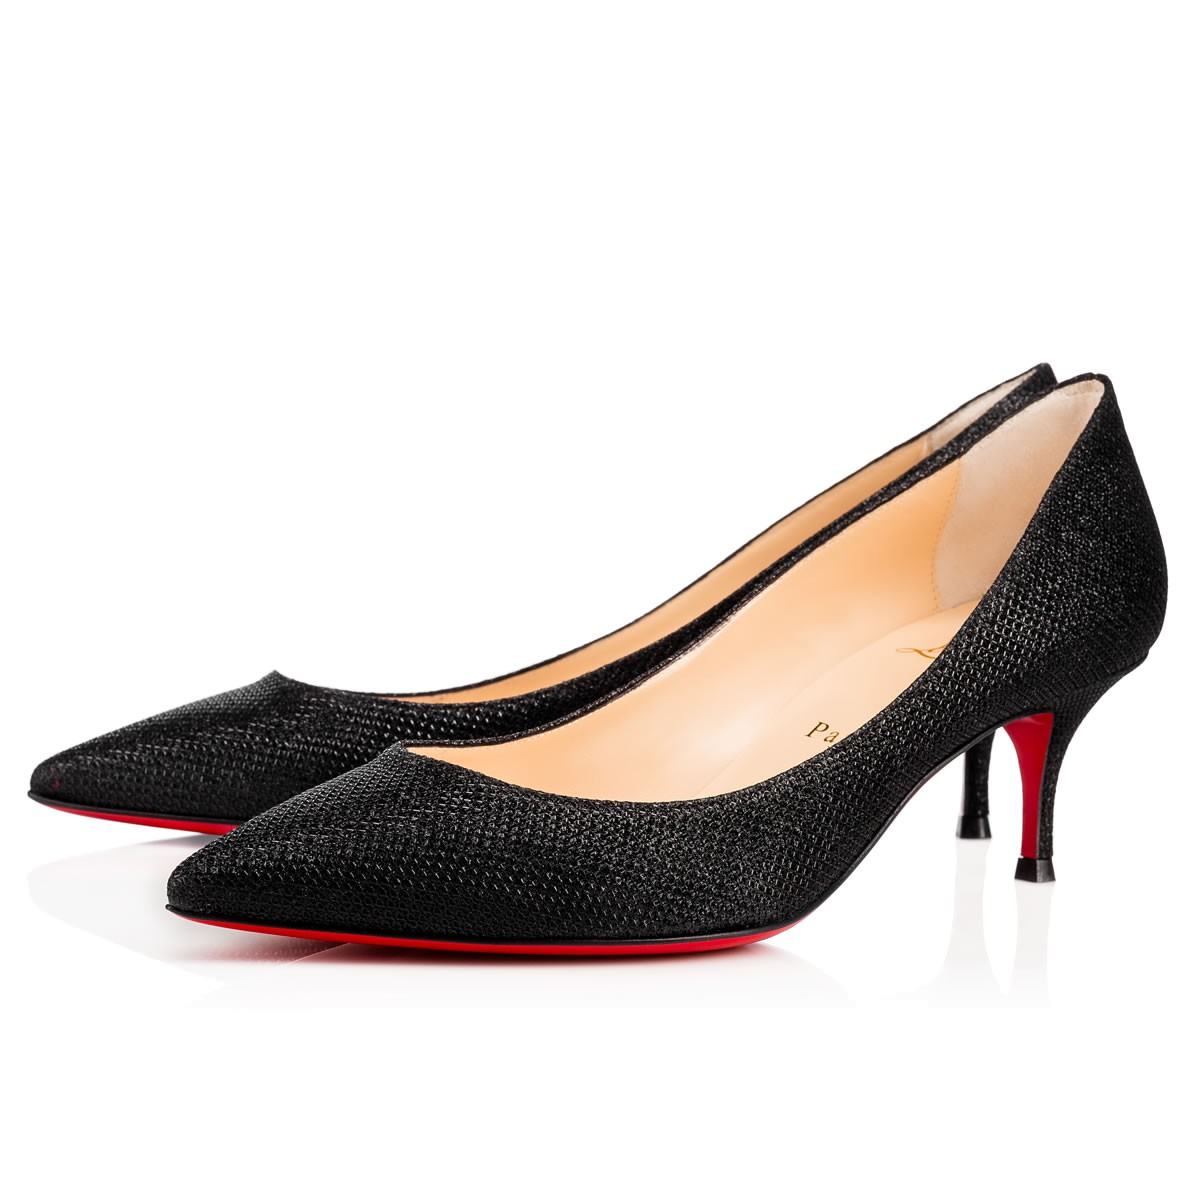 save off dd23b 198a2 Christian Louboutin Pigalle Follies Glitter Tisse 55 Black ...